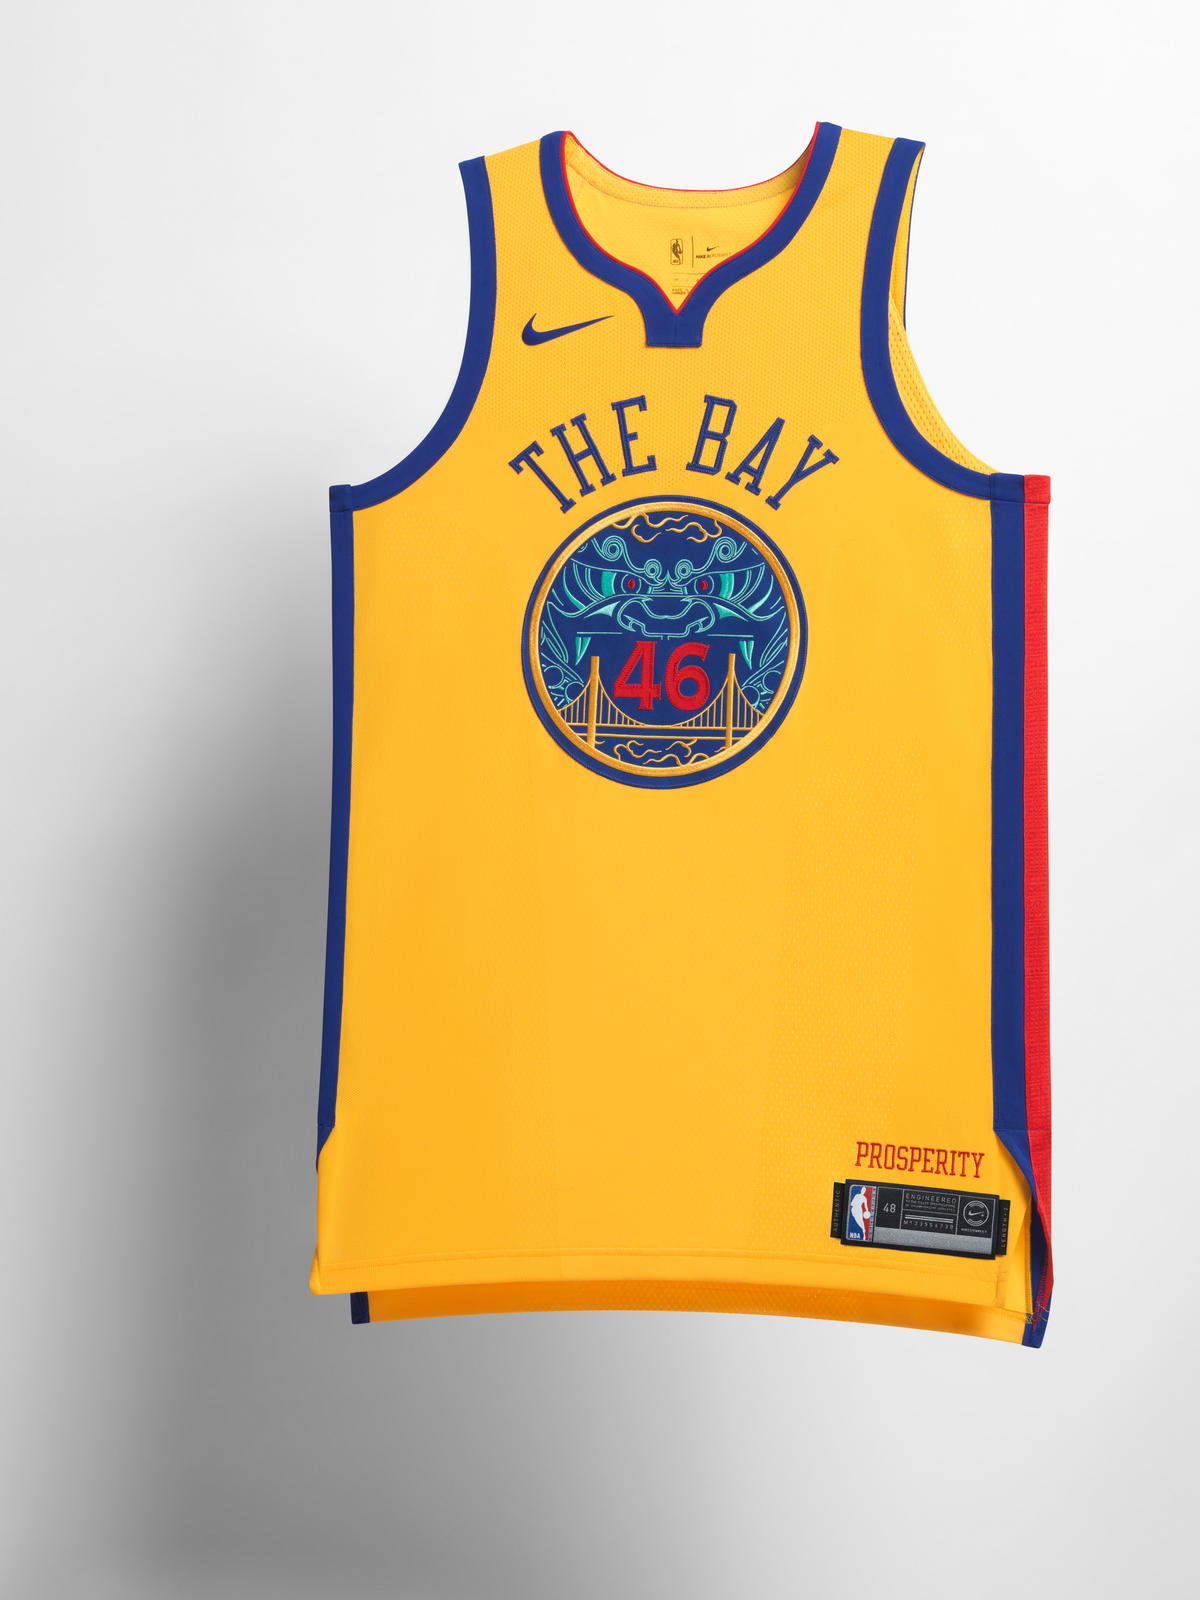 Nike Nba City Edition Uniform Nike News